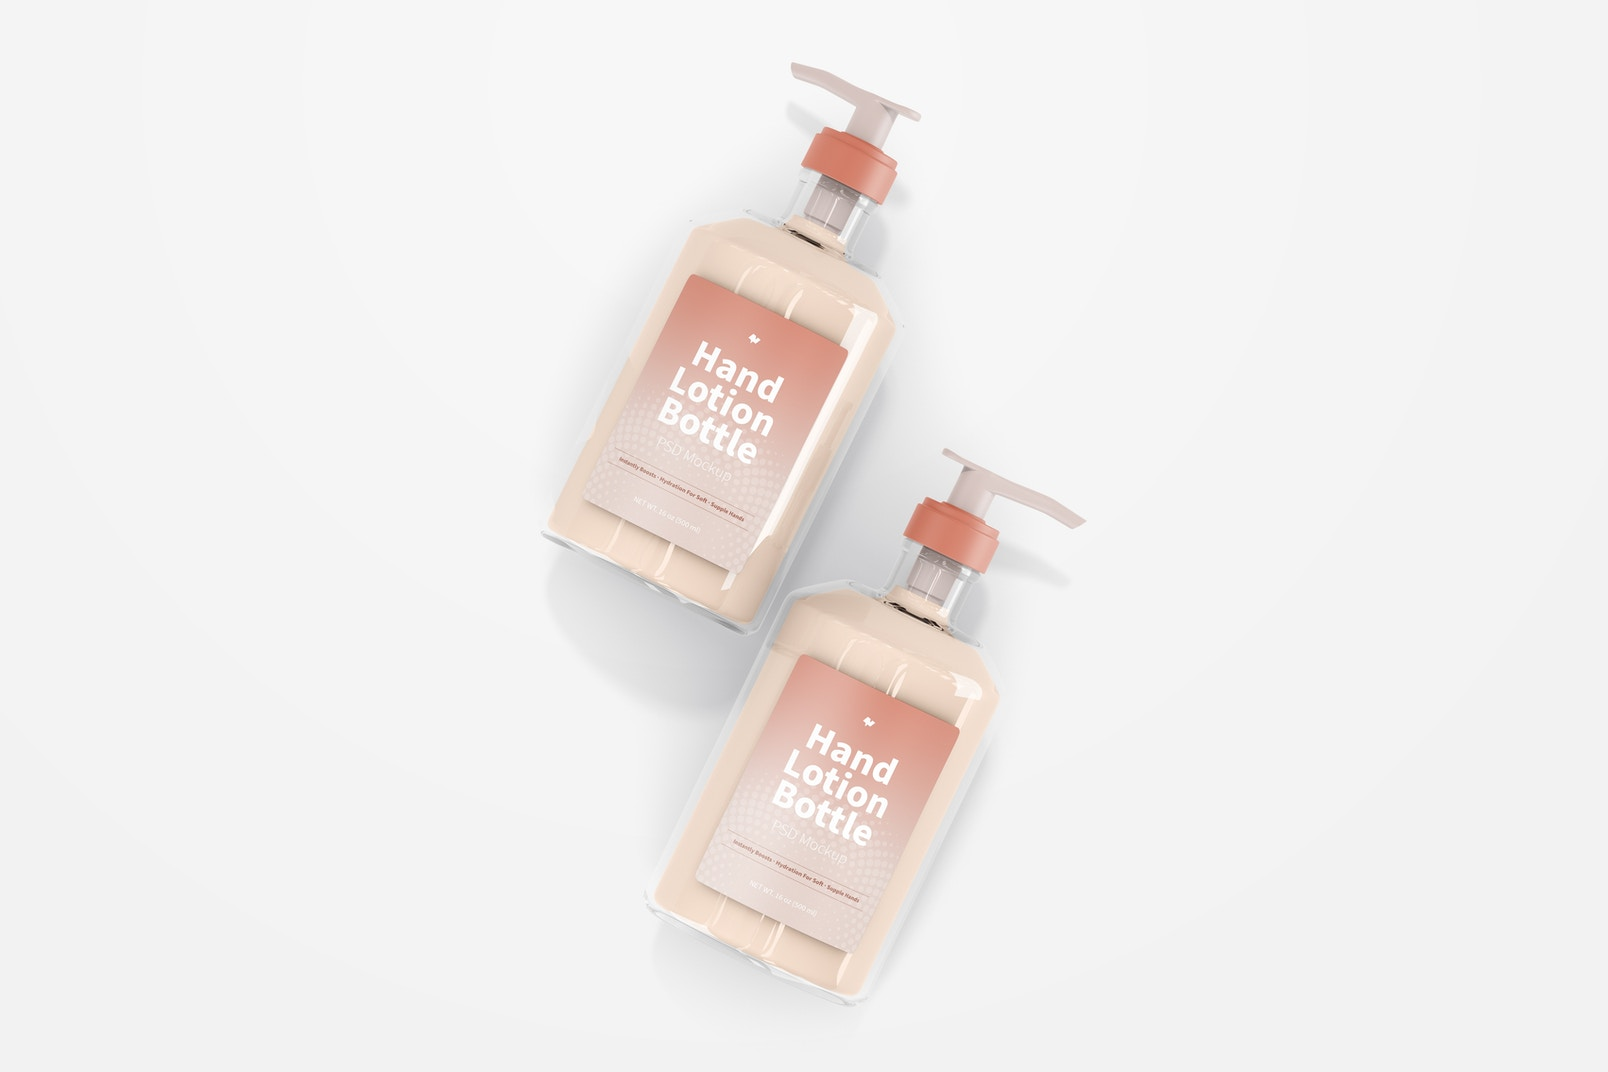 500 ml Hand Lotion Bottles Mockup, Top View